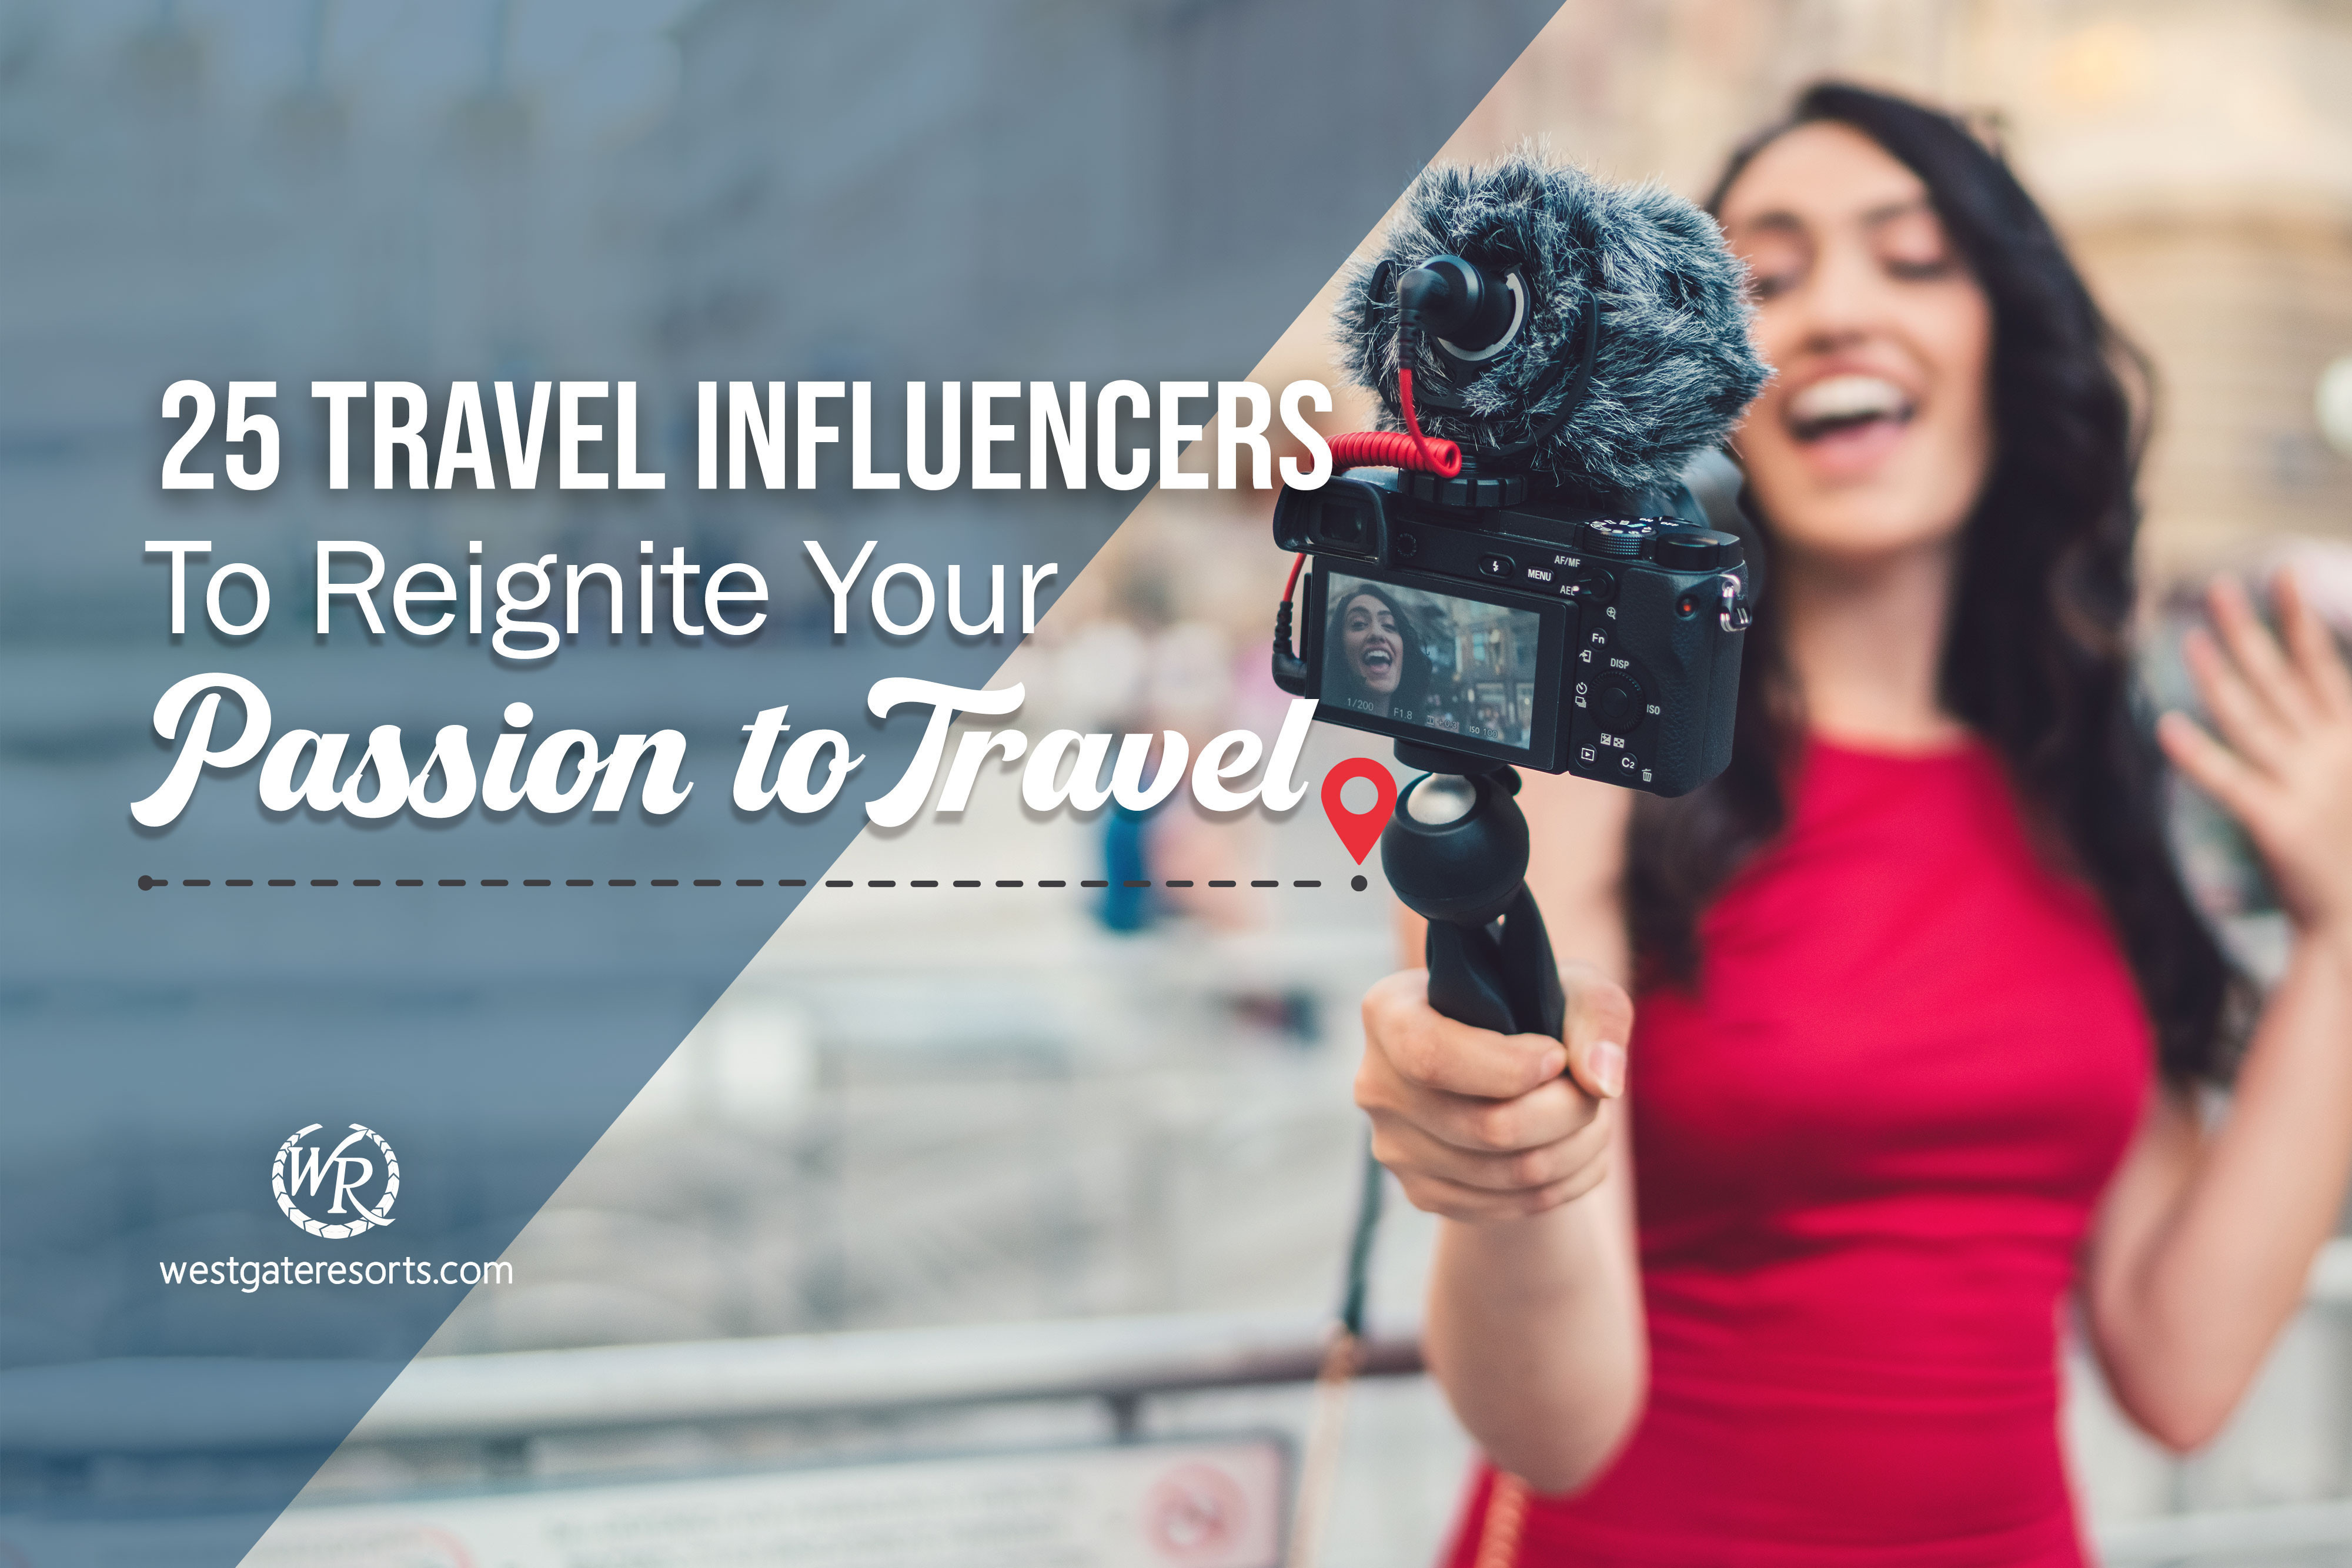 25 Travel Influencers To Reignite Your Passion for Travel (2020 Edition)